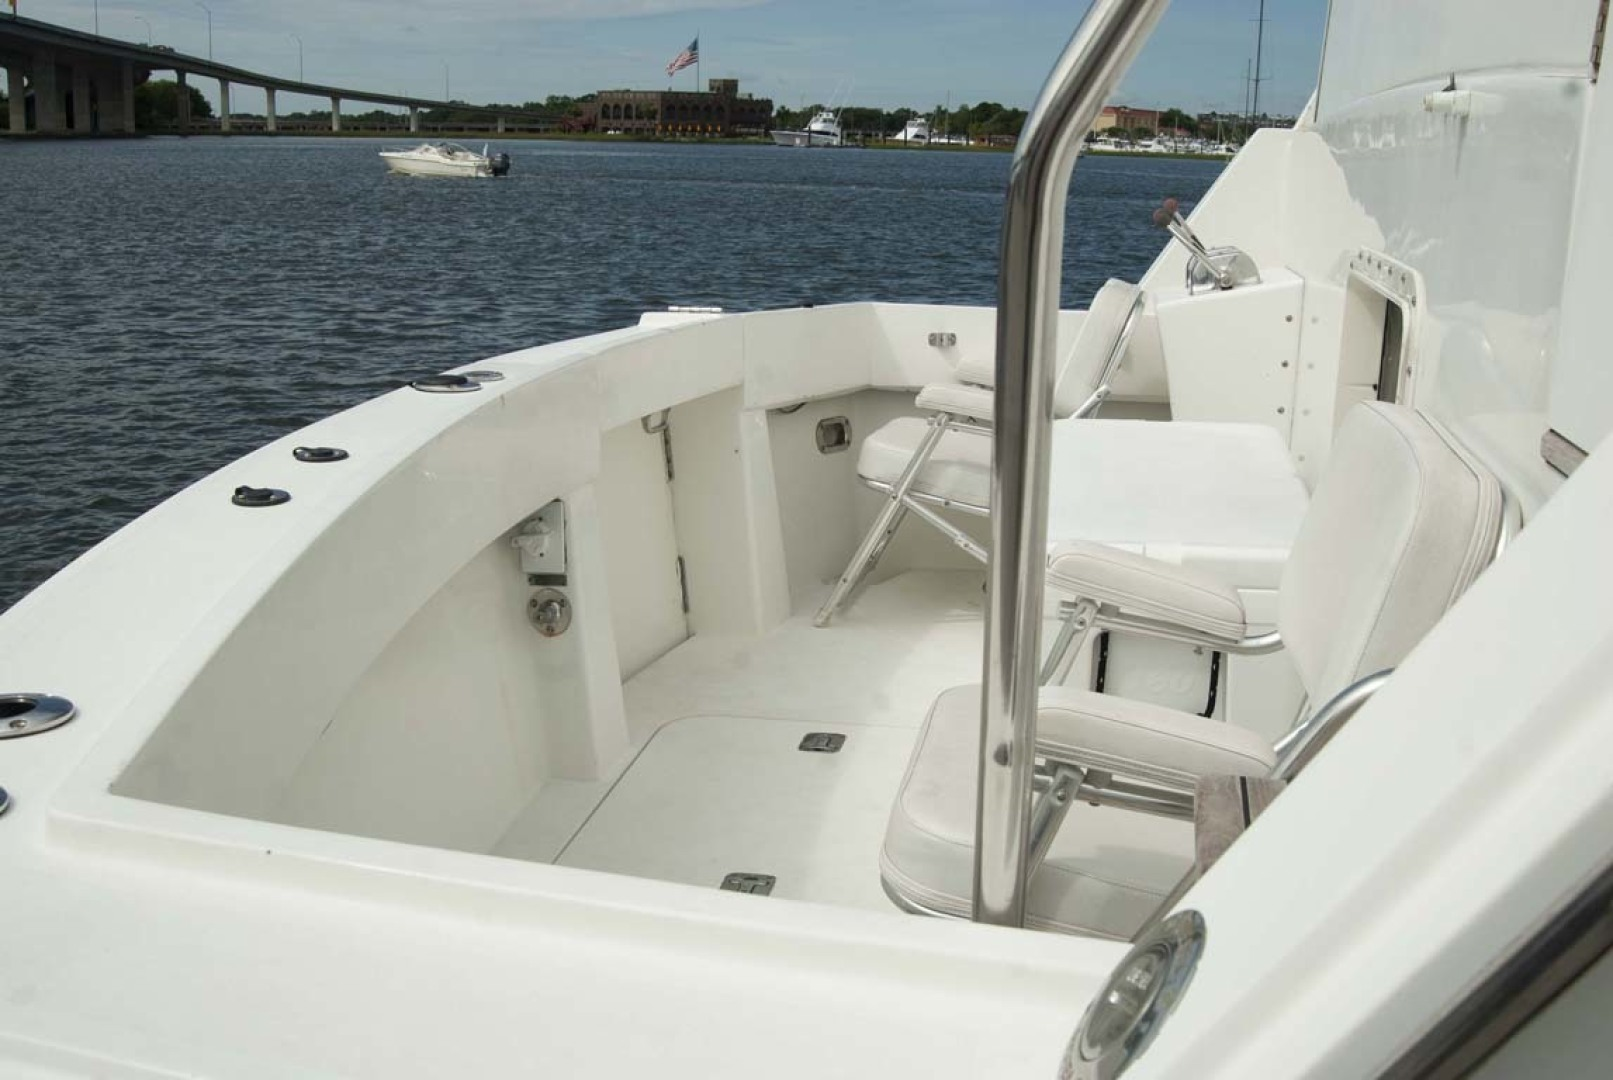 Hatteras-52 Cockpit Motor Yacht 1994-Believe It Mount Pleasant-South Carolina-United States-1415542 | Thumbnail